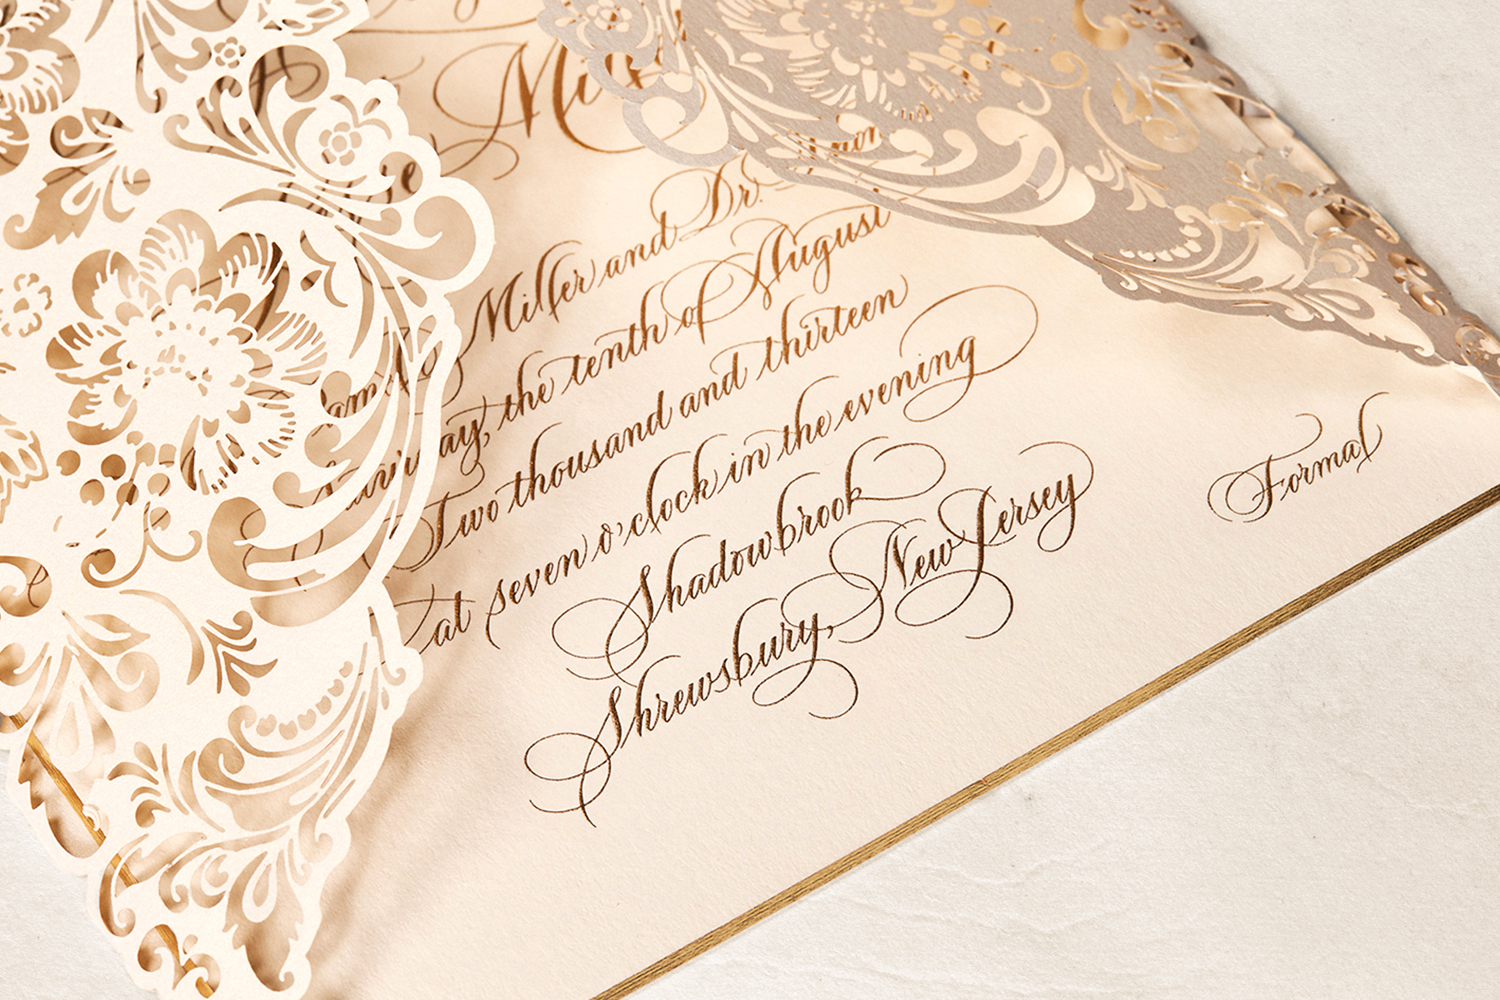 Formal_Engraved_Wedding_invite_4.jpg